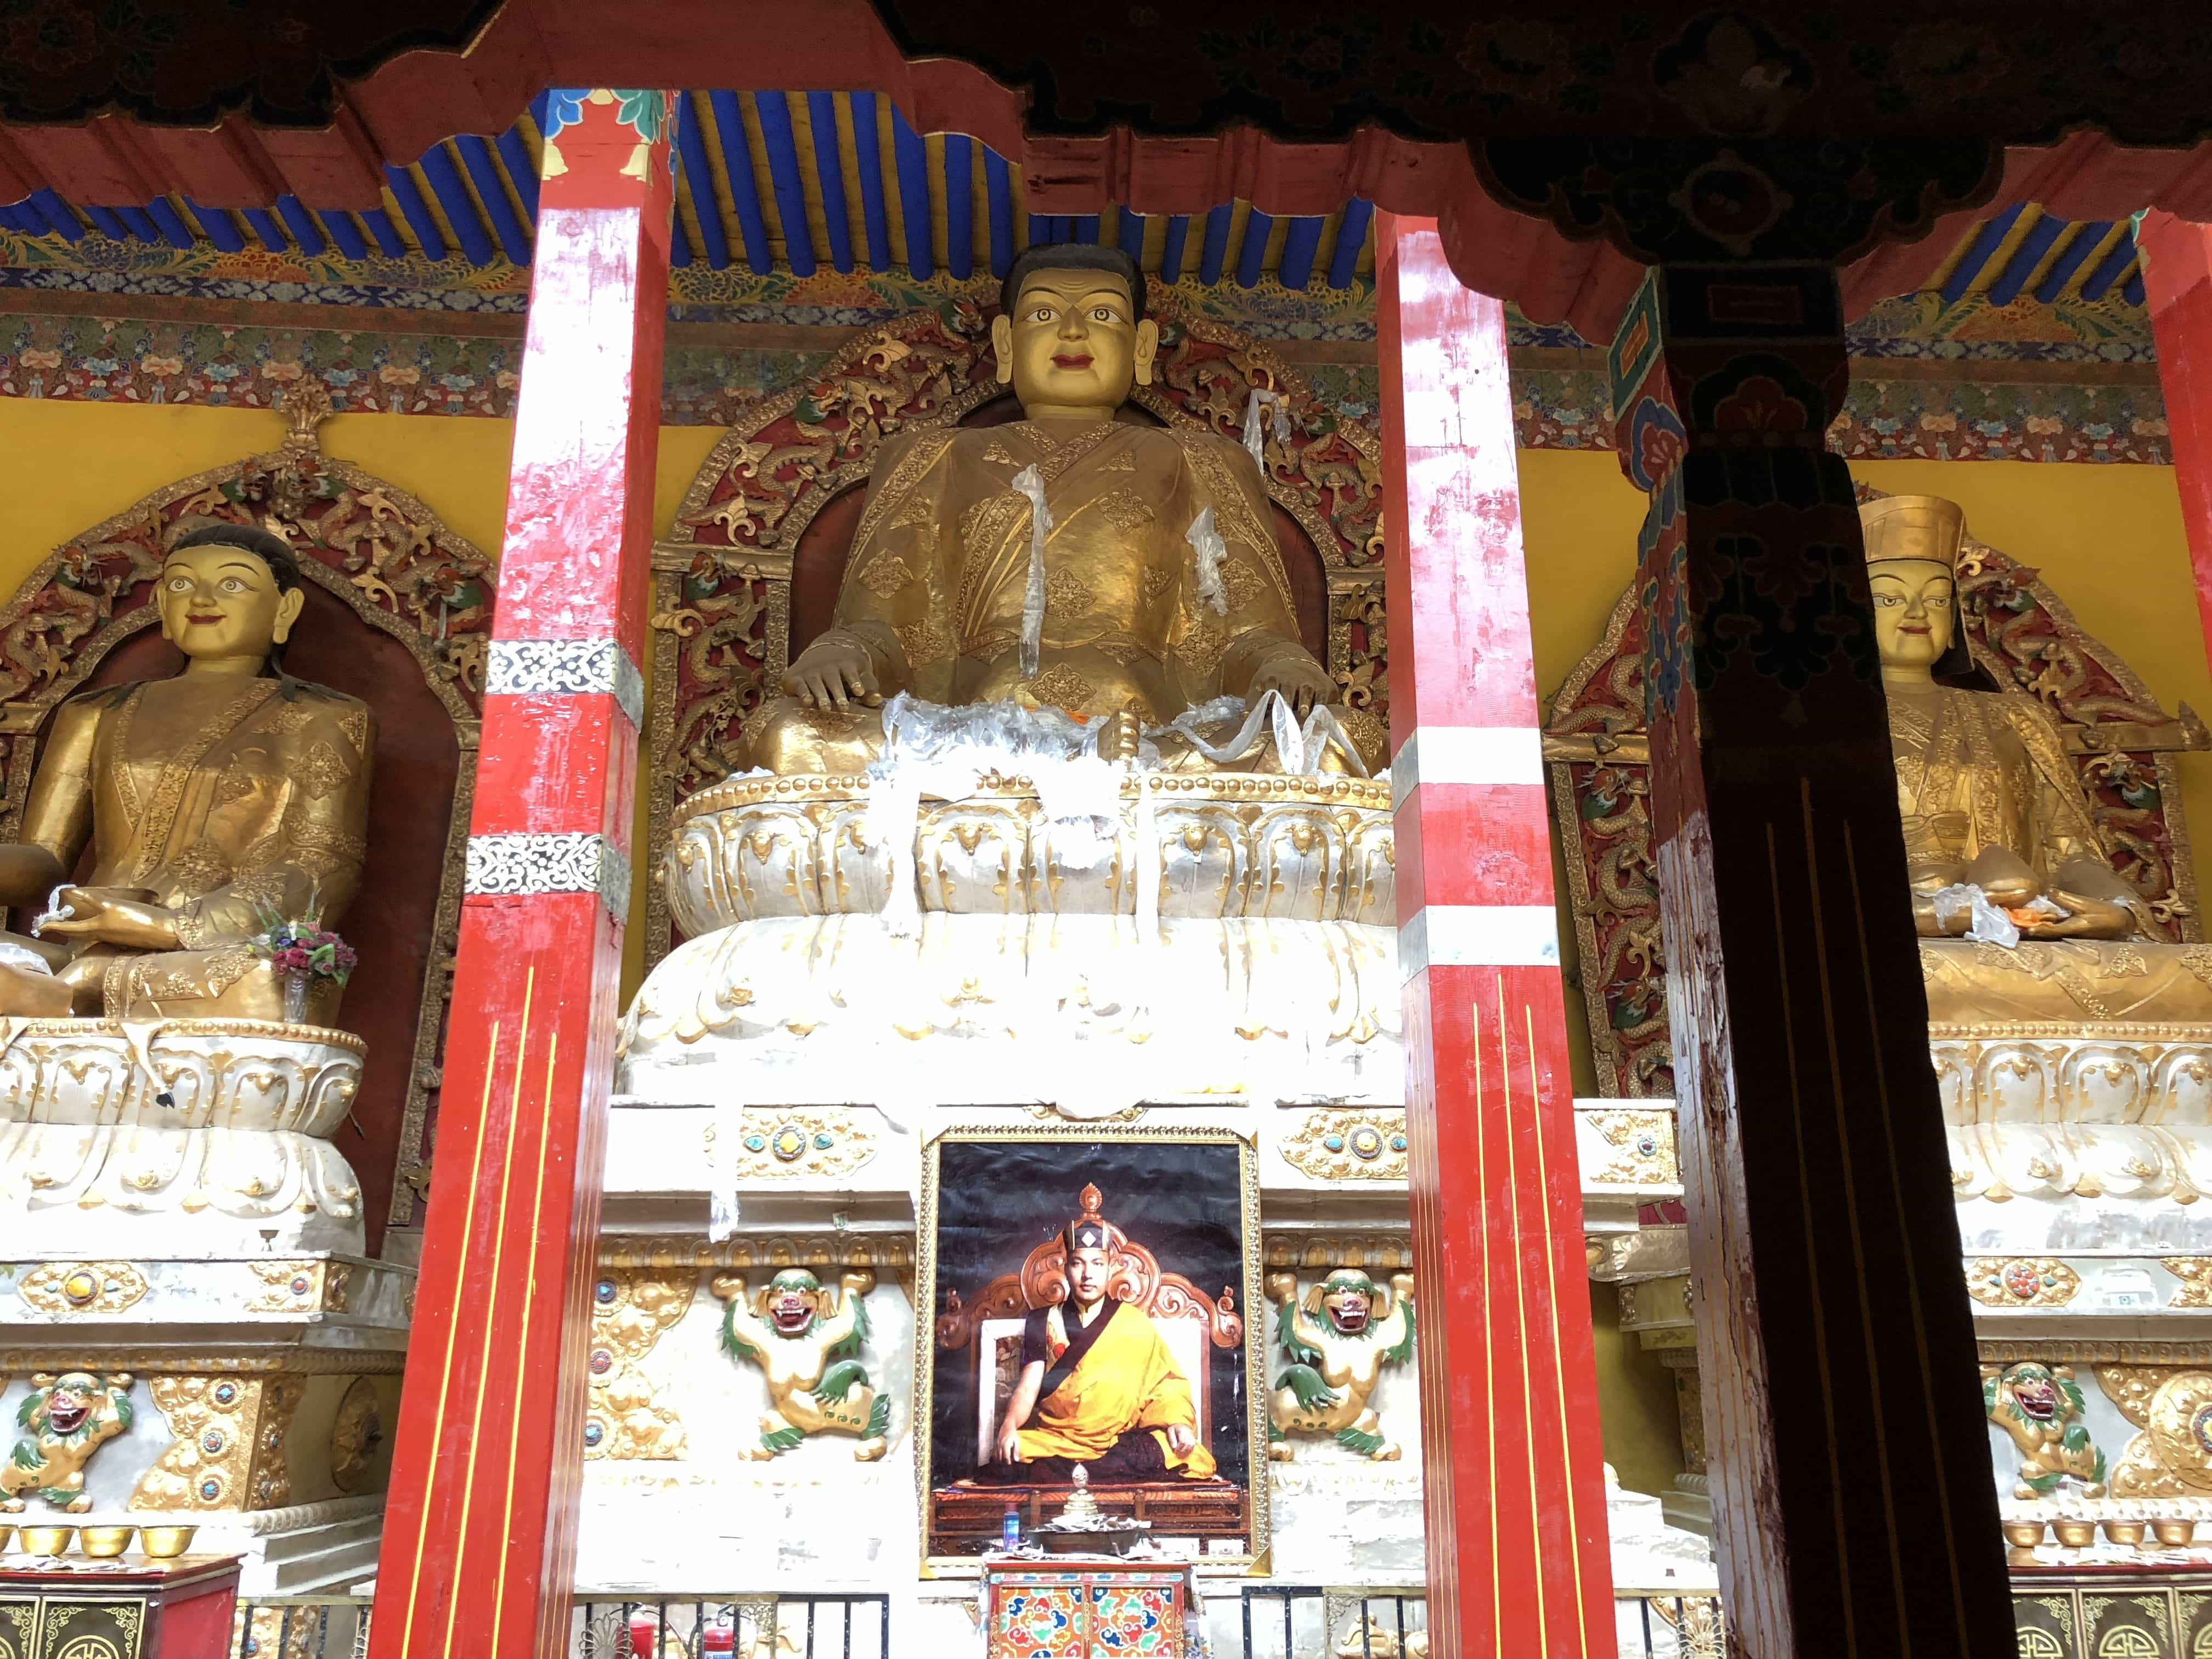 Statues of founders of Kagyu sect of Buddhism in Tsurpu